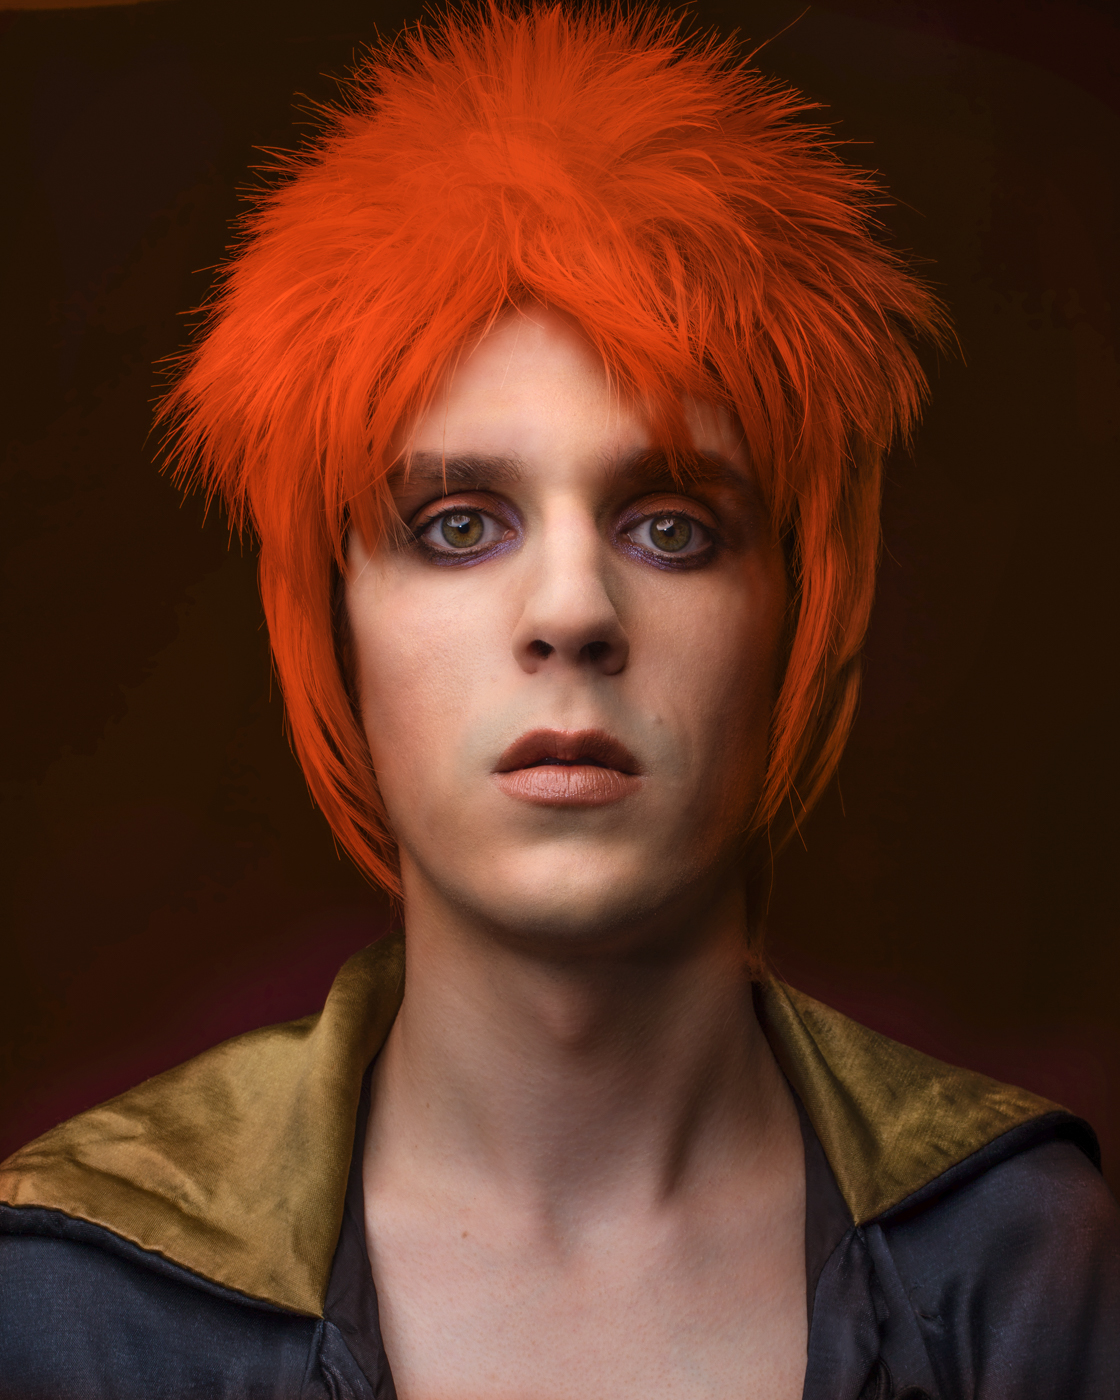 orange-wig-david-bowie-photo-orlando-strong.jpg